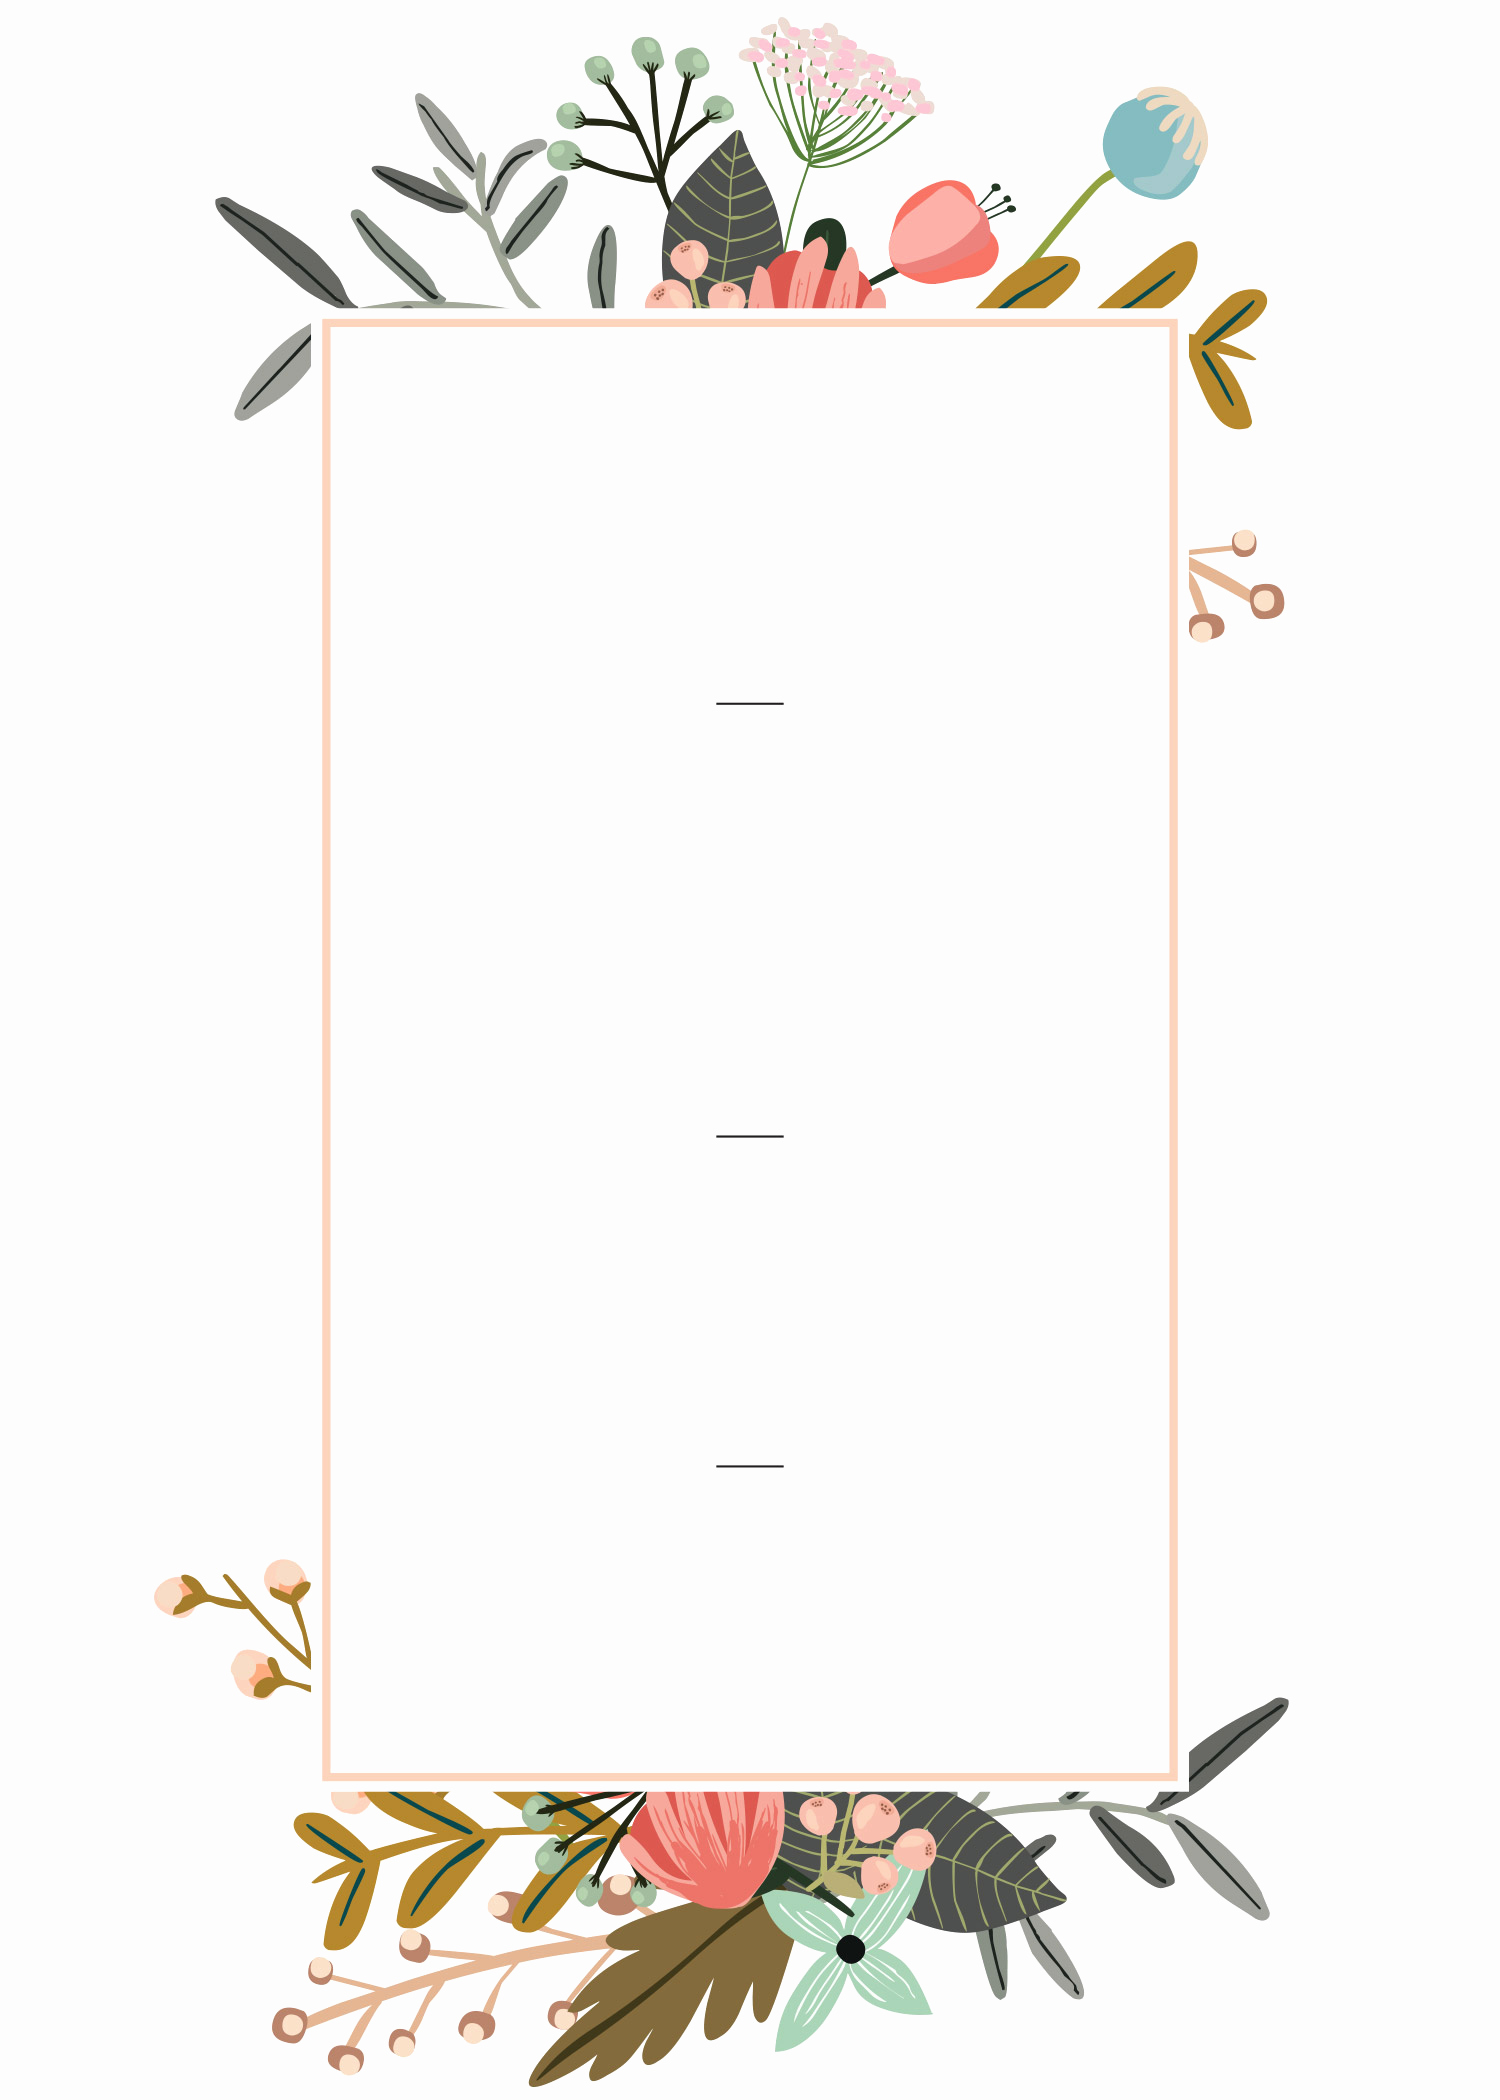 Wedding Invitation Design Templates Elegant Editable Wedding Invitation Templates for the Perfect Card